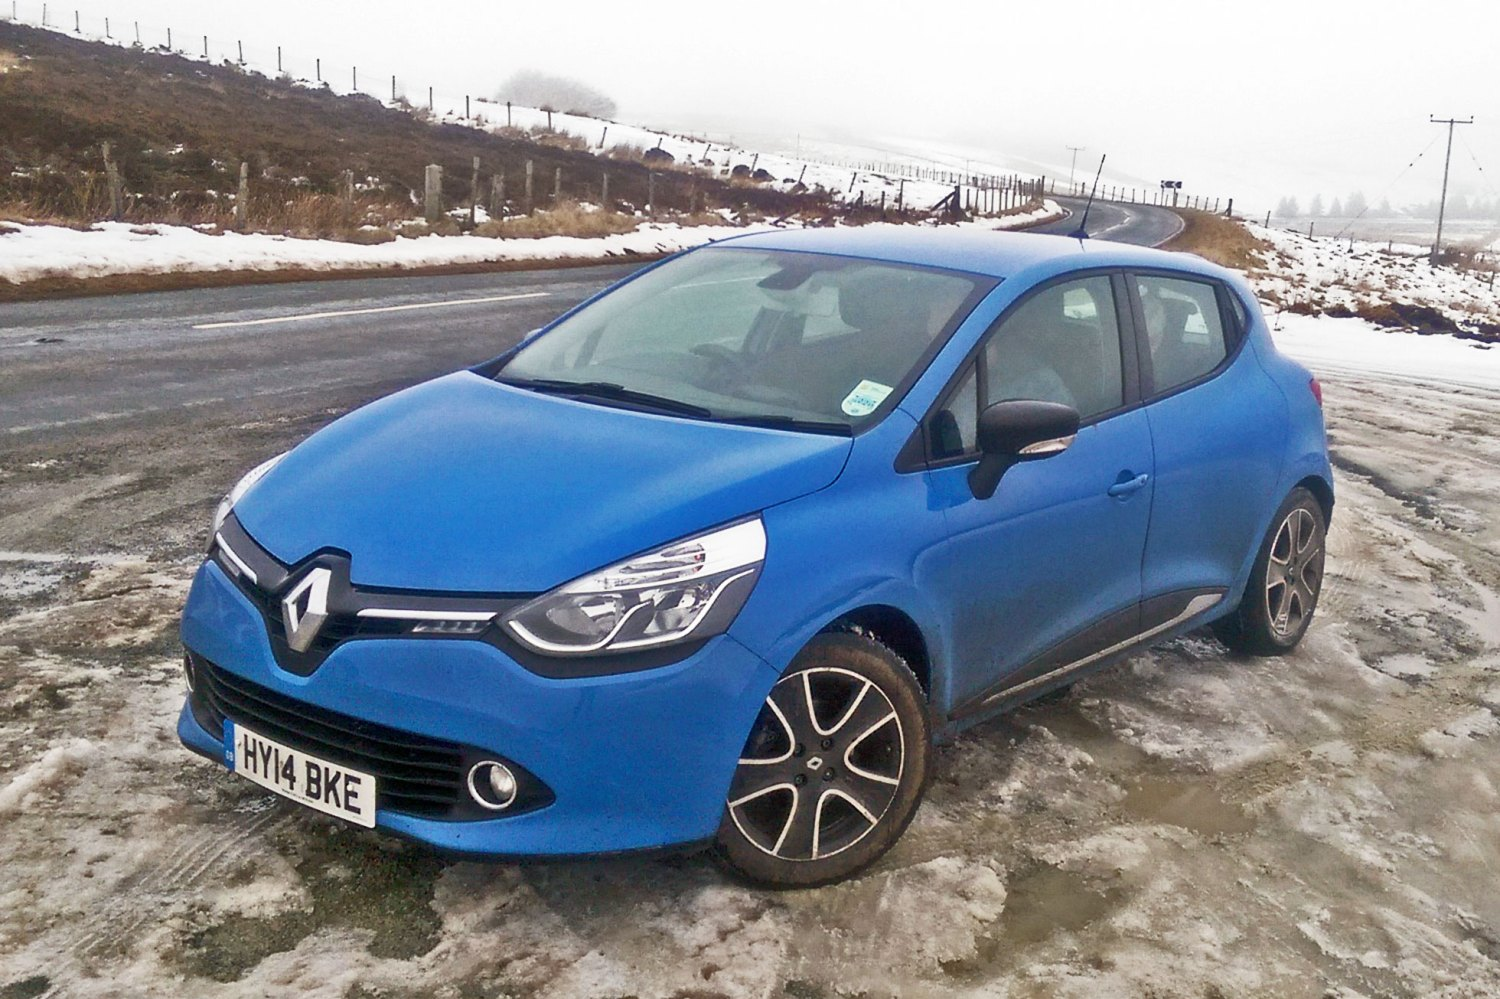 Renault Clio 1.5 dCi 86 eco2 (2014) long-term review